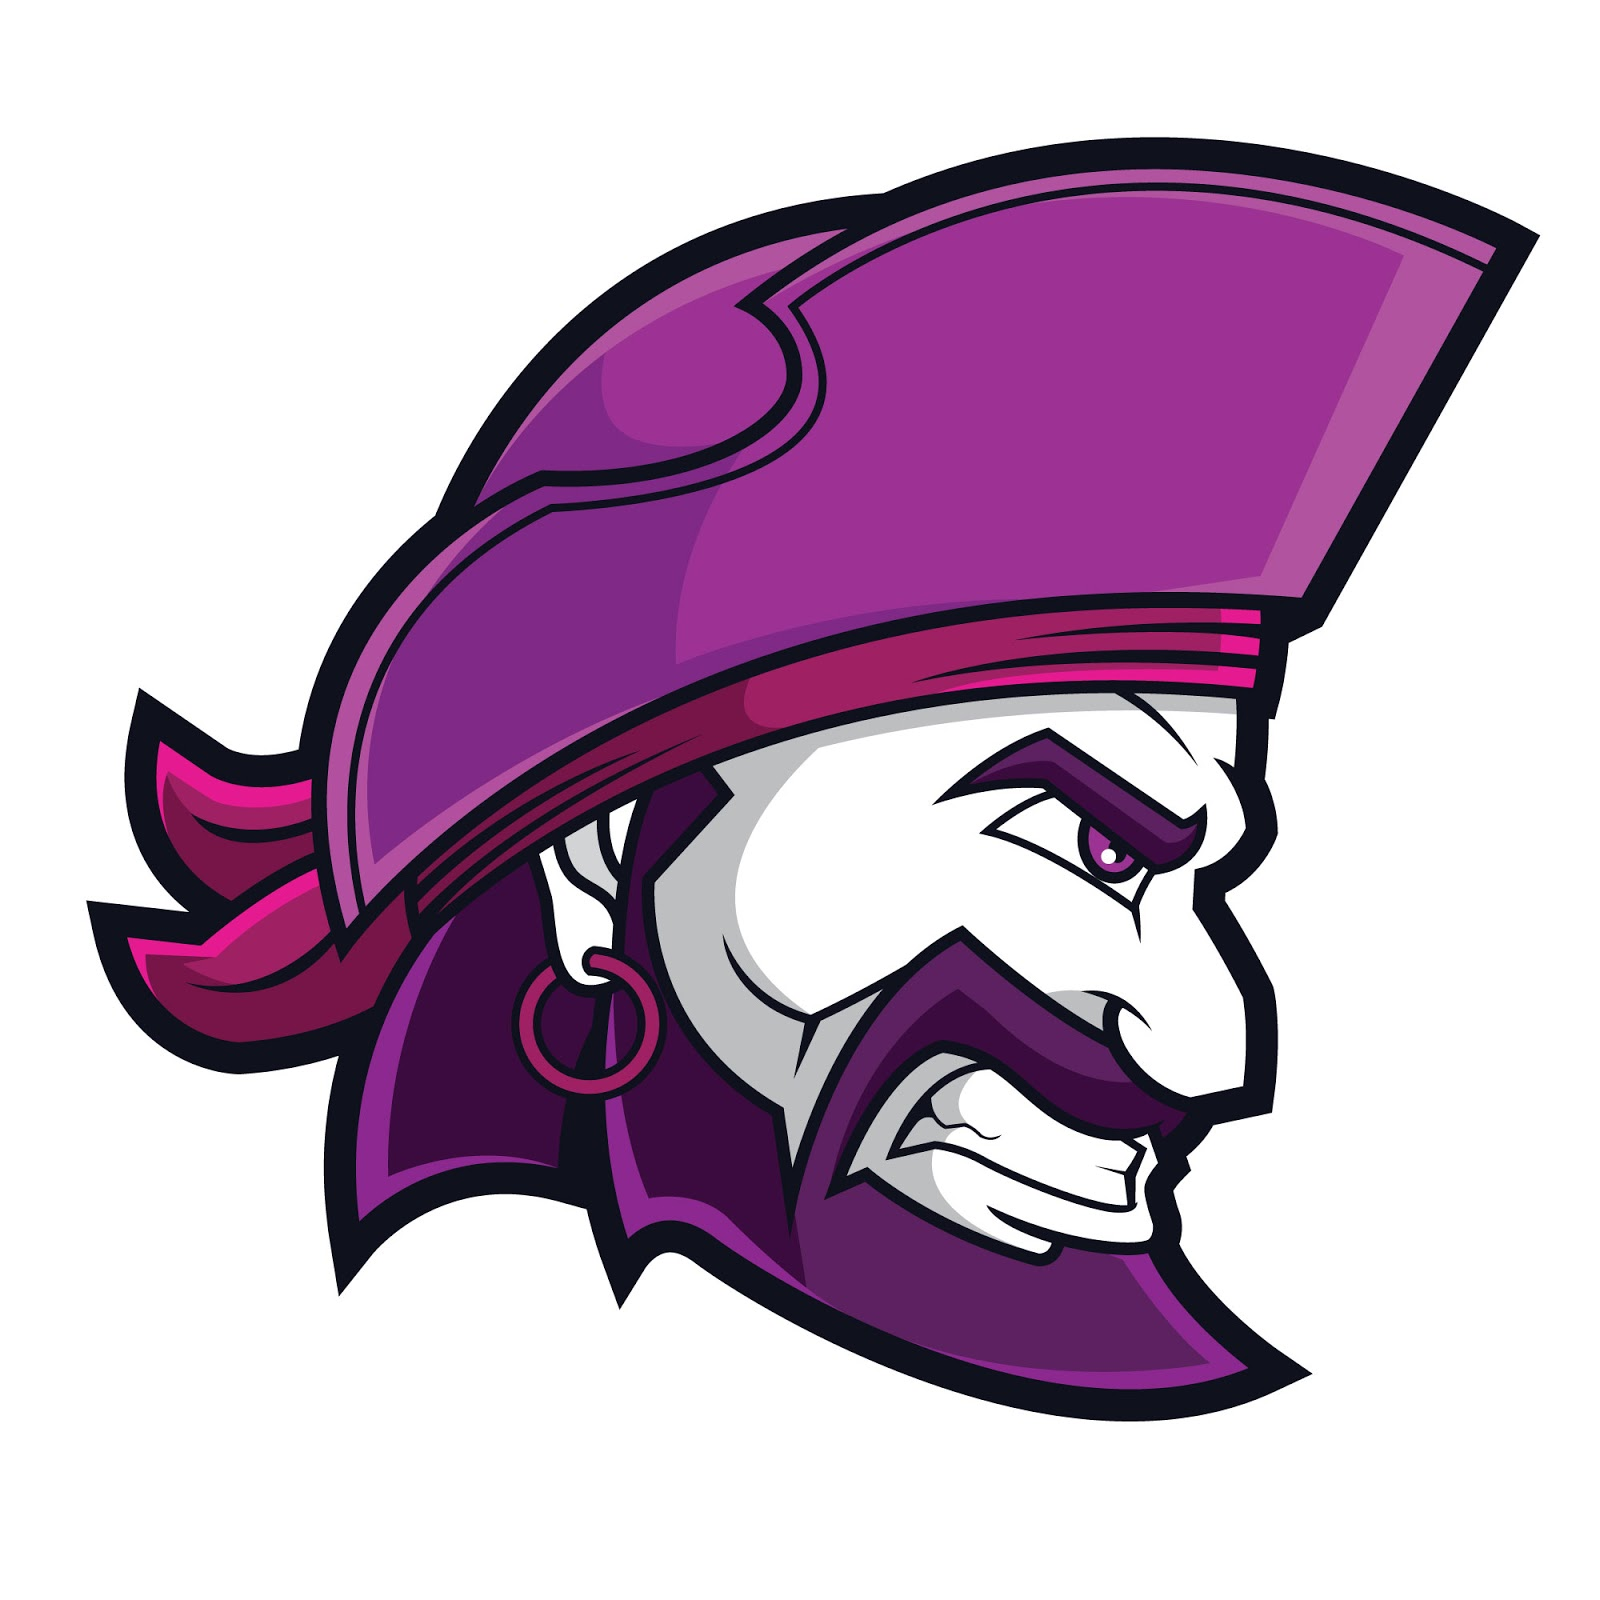 Pirate Sports Logo Free Download Vector CDR, AI, EPS and PNG Formats